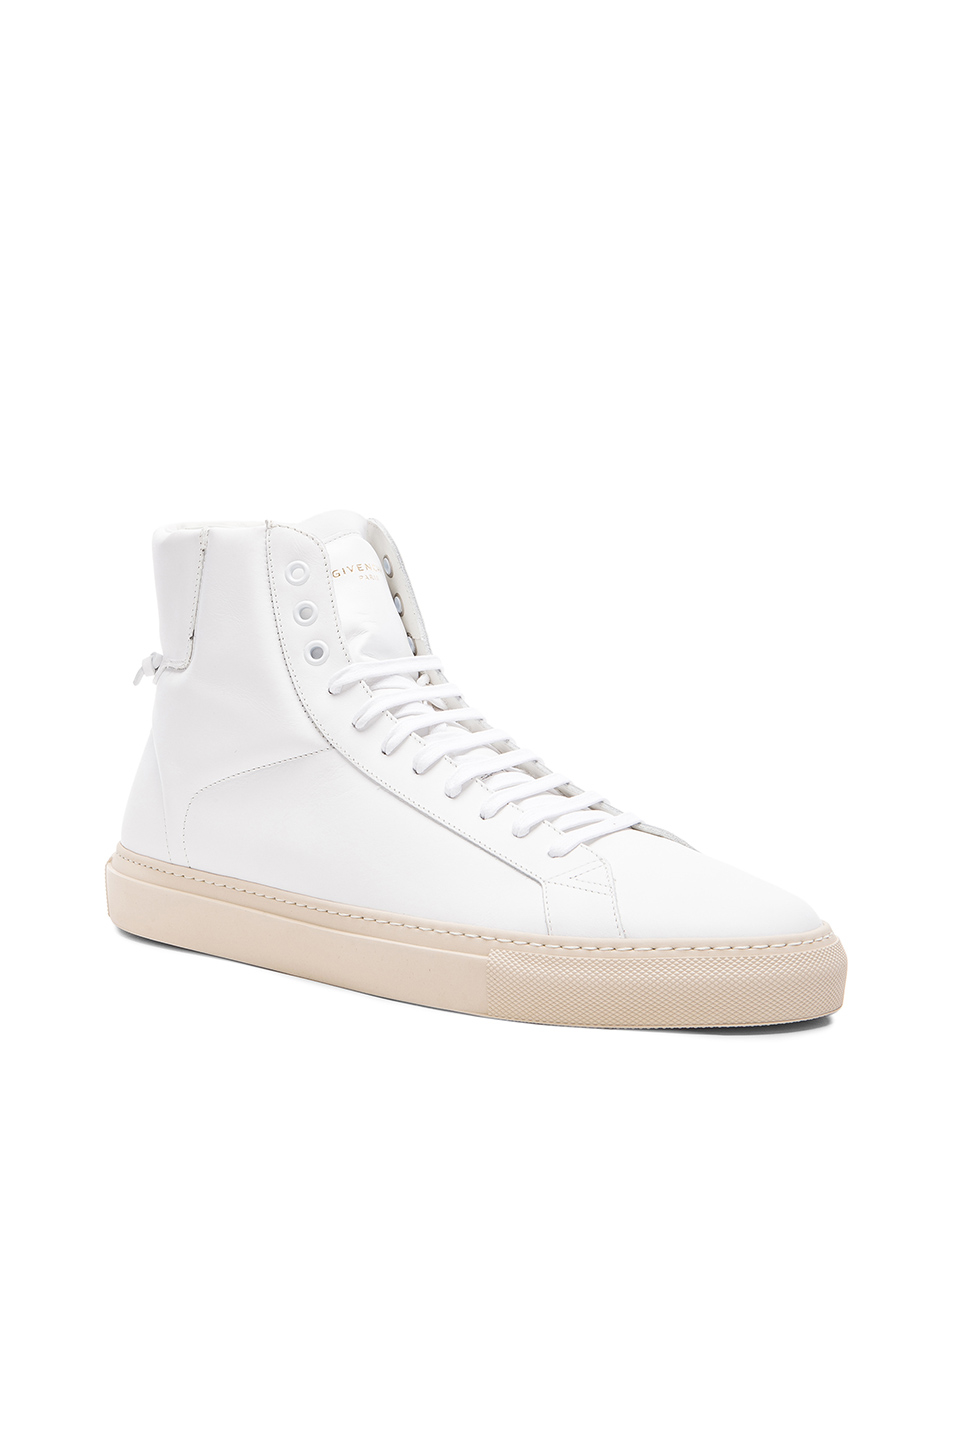 givenchy knots high top leather sneakers in white for